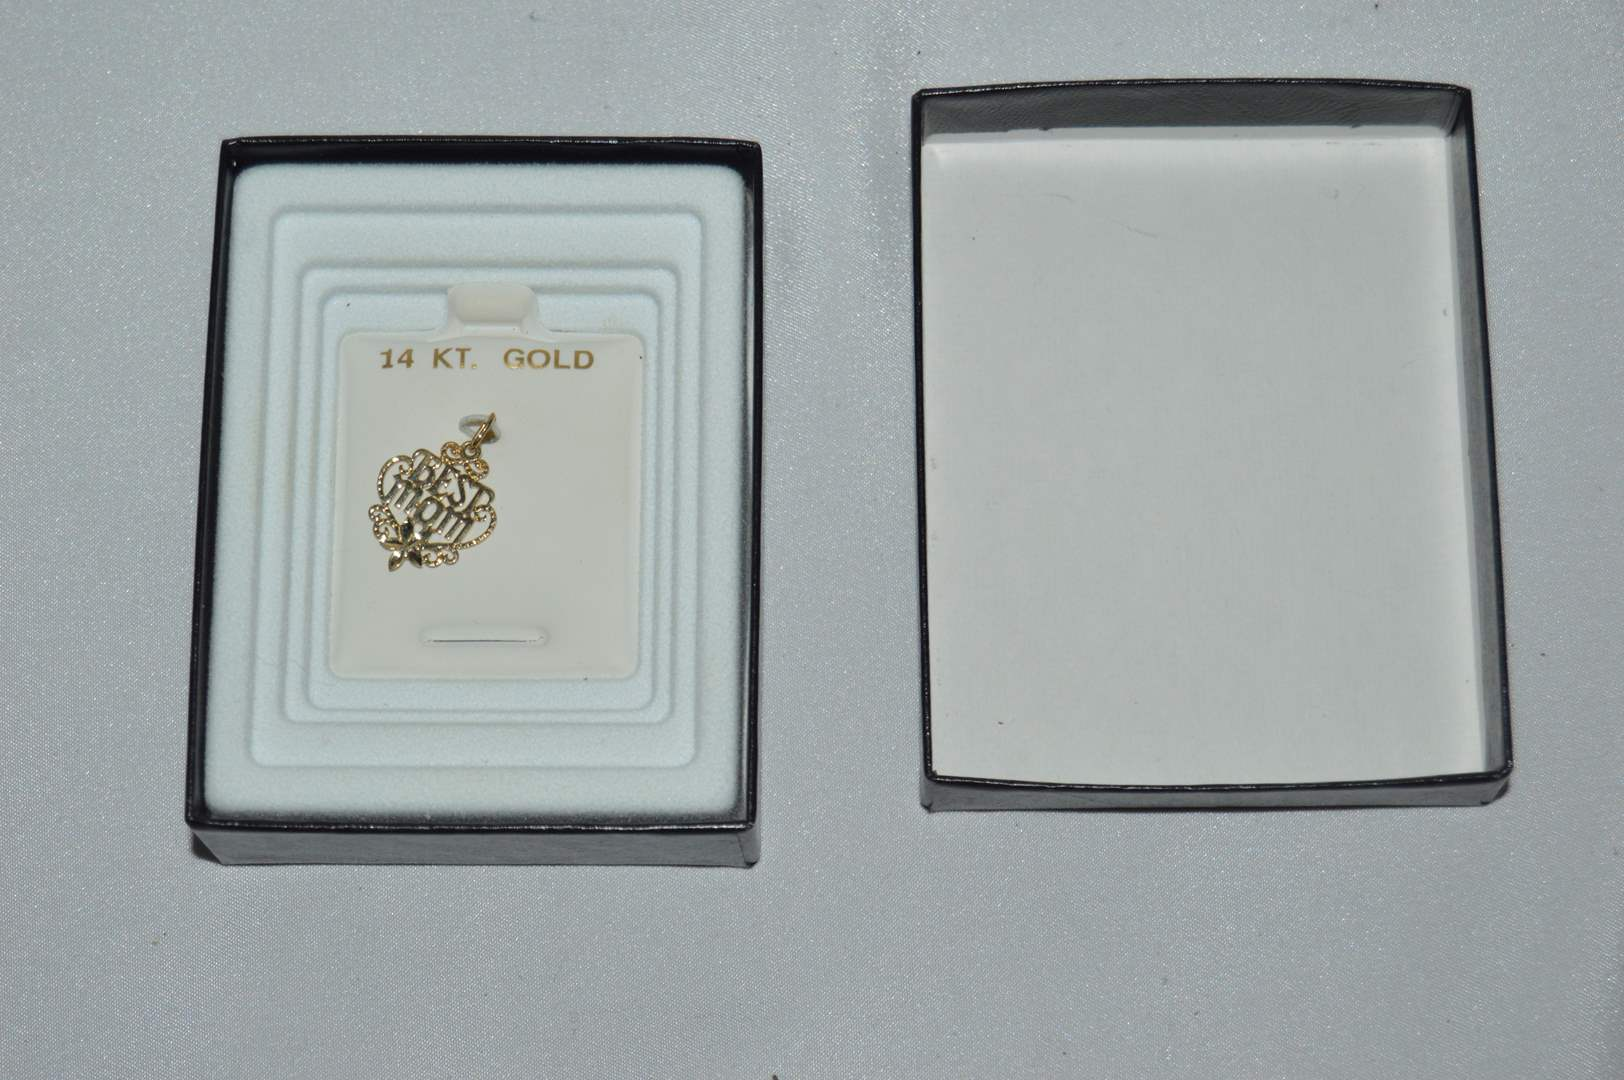 """Lot # 100 14k Gold """"Best Mom"""" charm - New in box (main image)"""